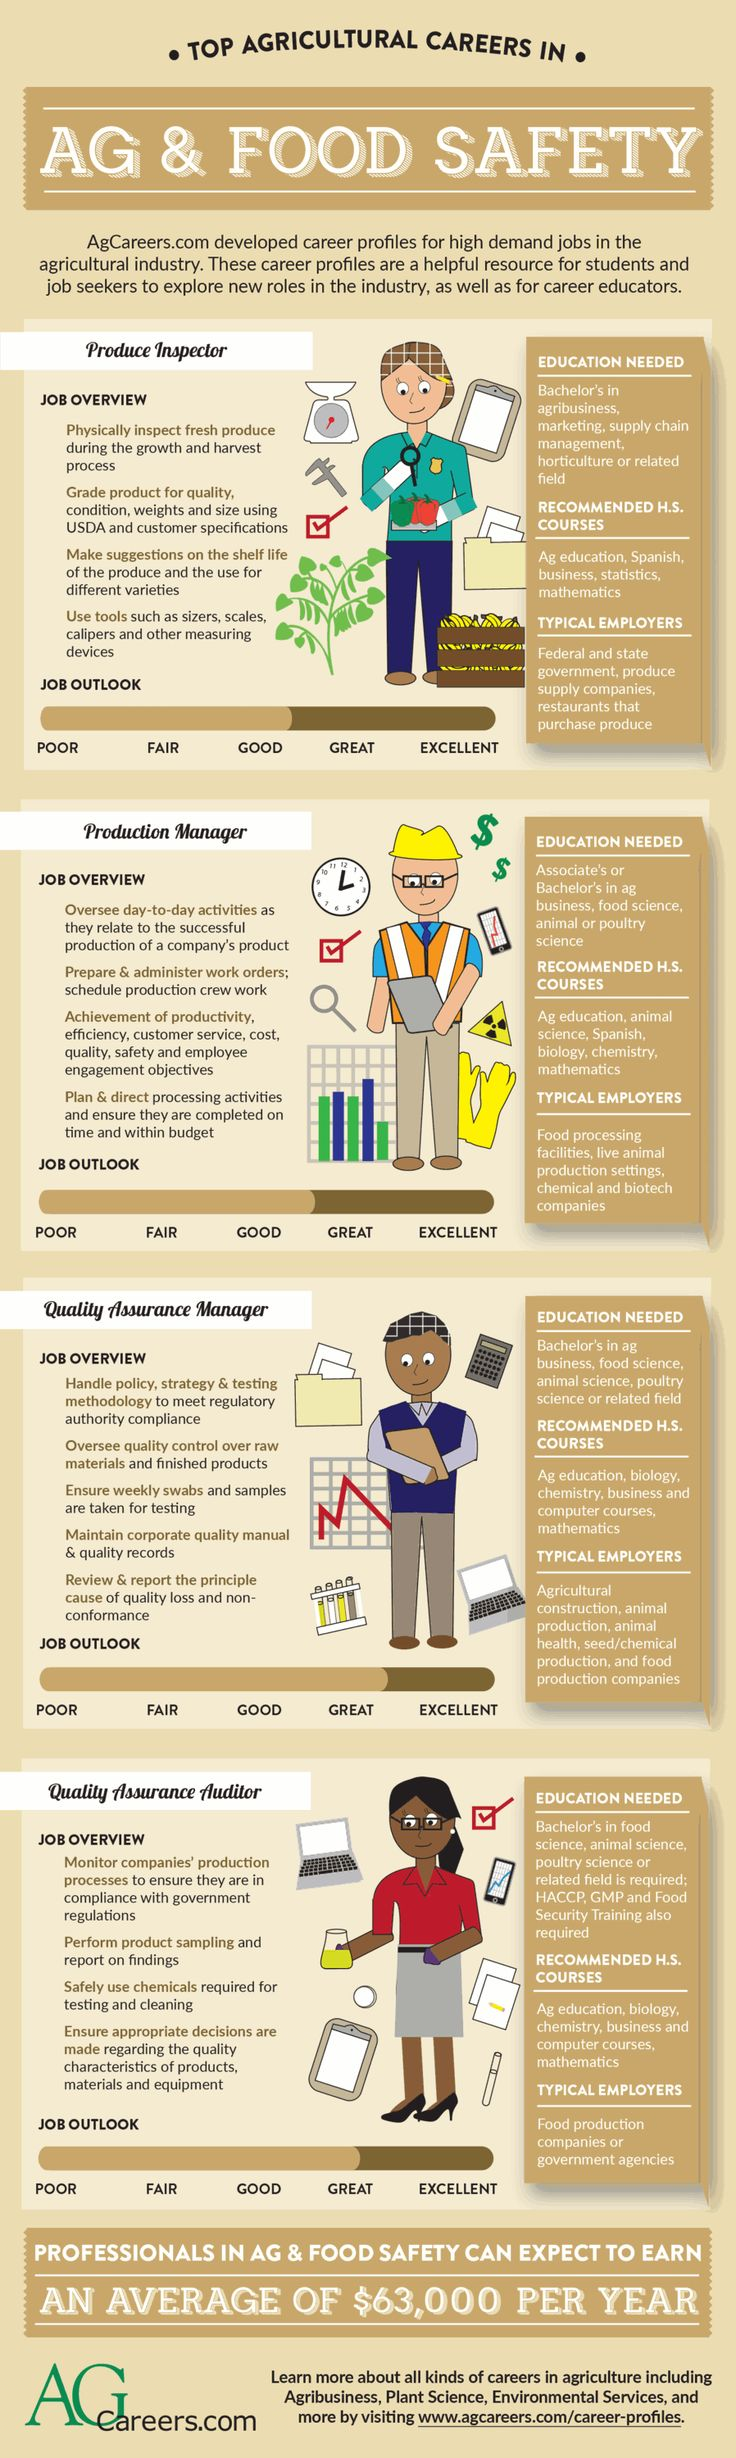 Top Agricultural Careers in Ag & Food Safety – AgCareers.com developed career profiles for high demand jobs in the agricultural industry. Explore the top careers in ag and food safety and find out the education needed, recommended high school coursework, job outlook and typical employers. More information on other agricultural career profiles can be found here:  http://www.agcareers.com/career-profiles/